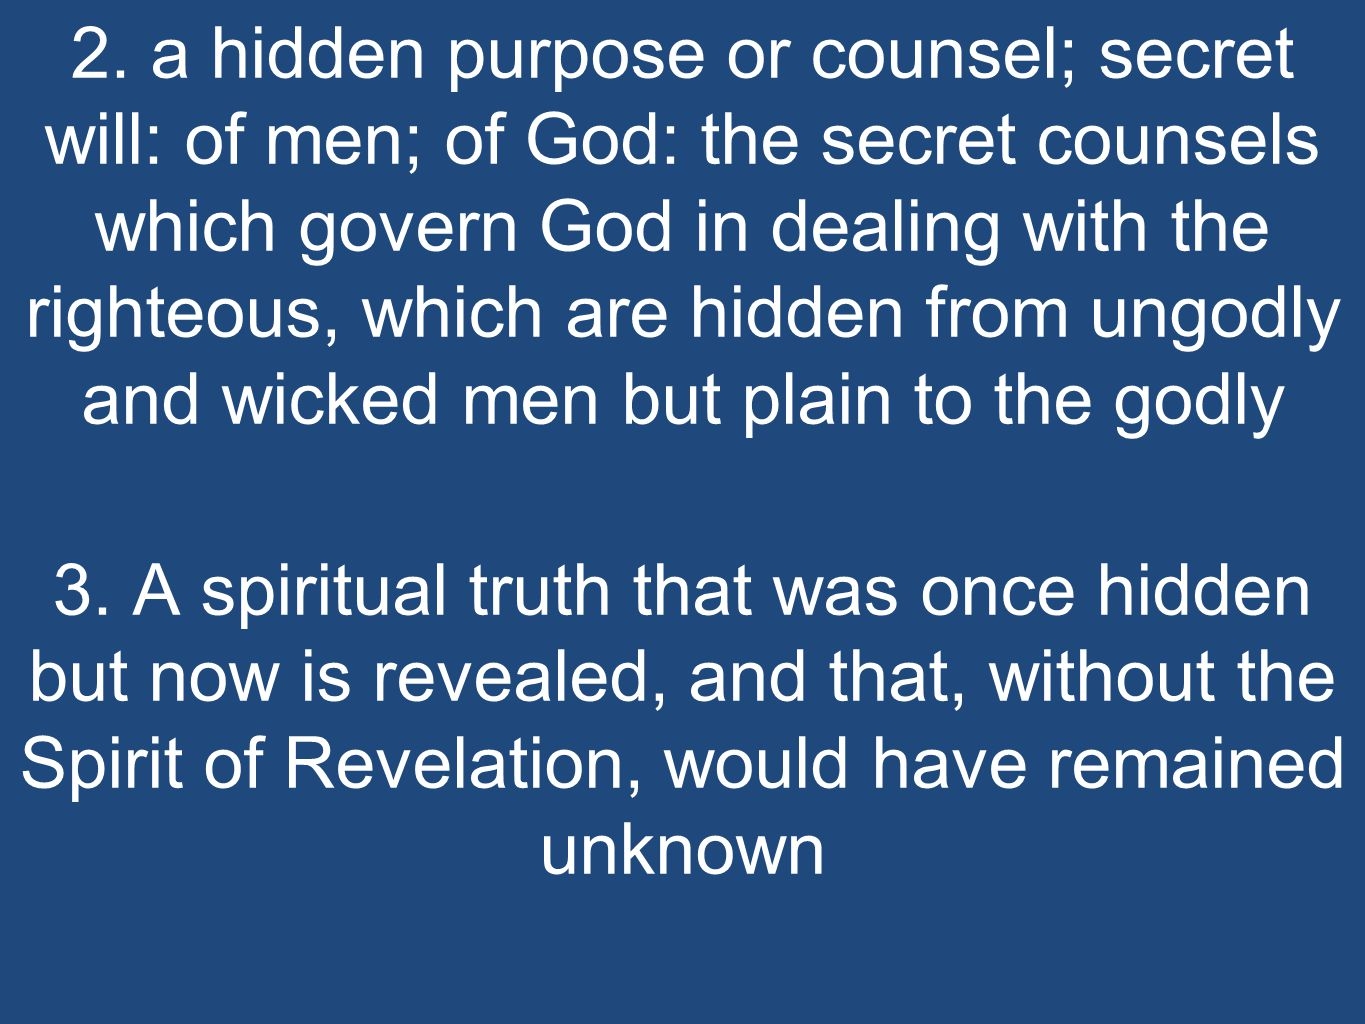 2. a hidden purpose or counsel; secret will: of men; of God: the secret counsels which govern God in dealing with the righteous, which are hidden from